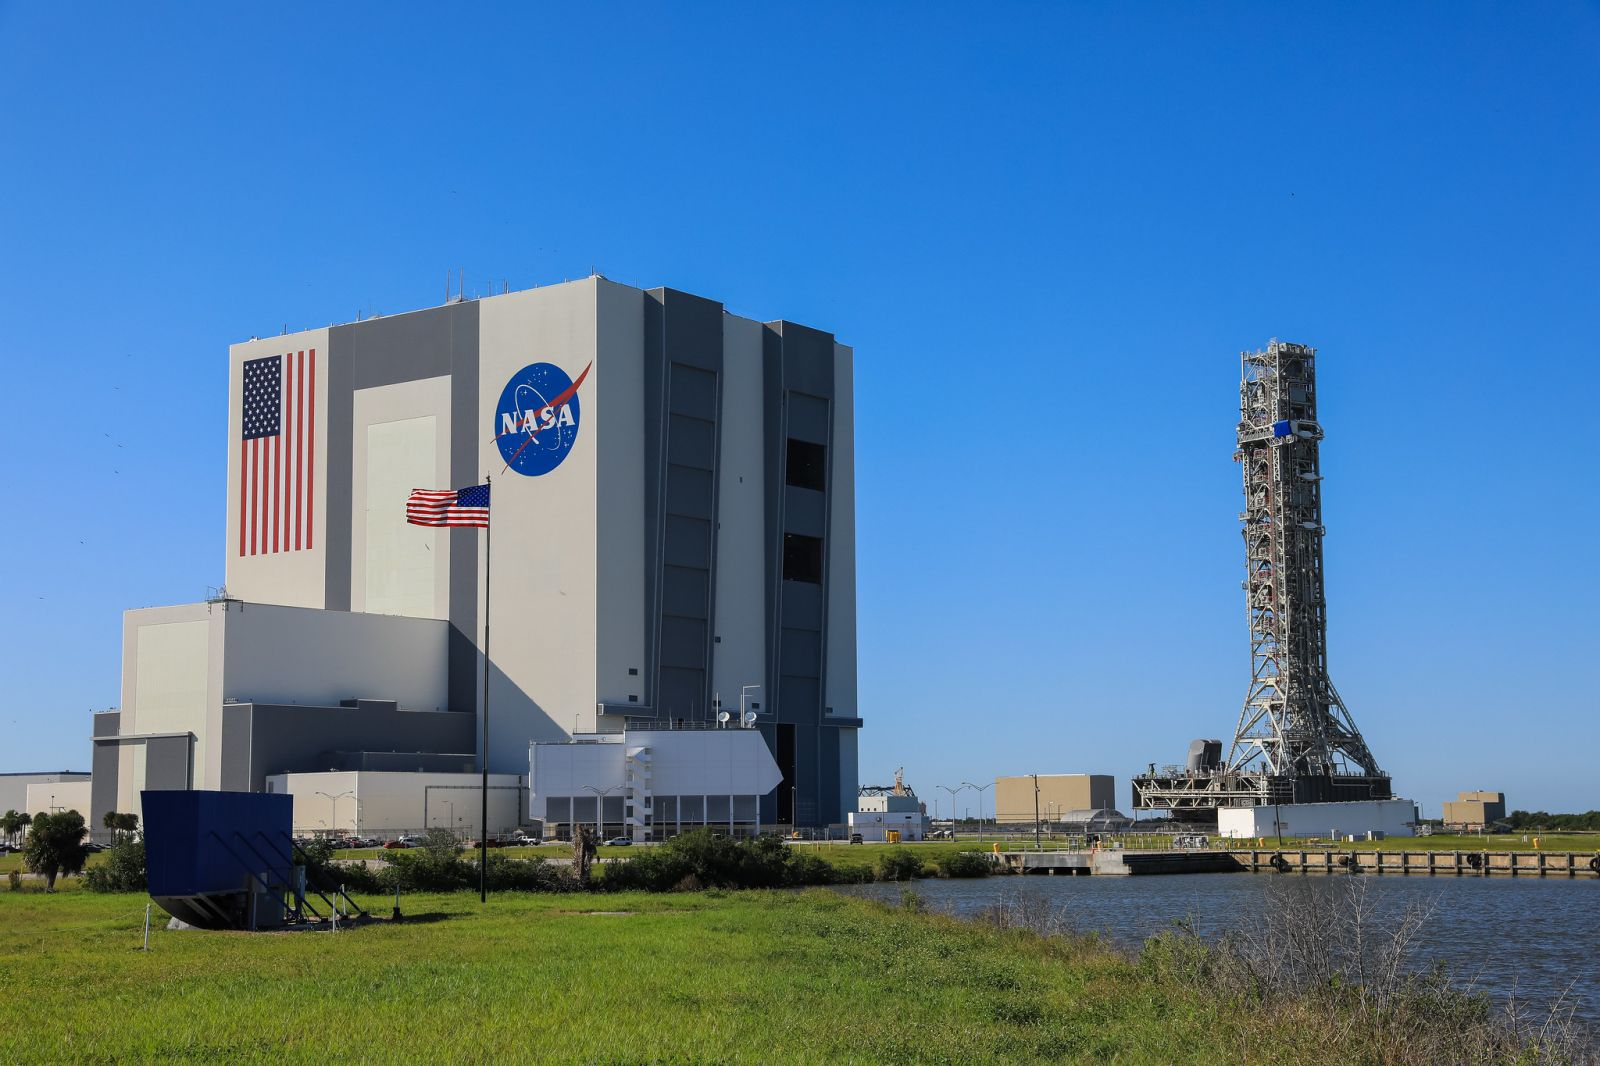 NASAs Mobile Launcher seen outside the Vehicle Assembly Building before booster stacking began. Credit: NASA